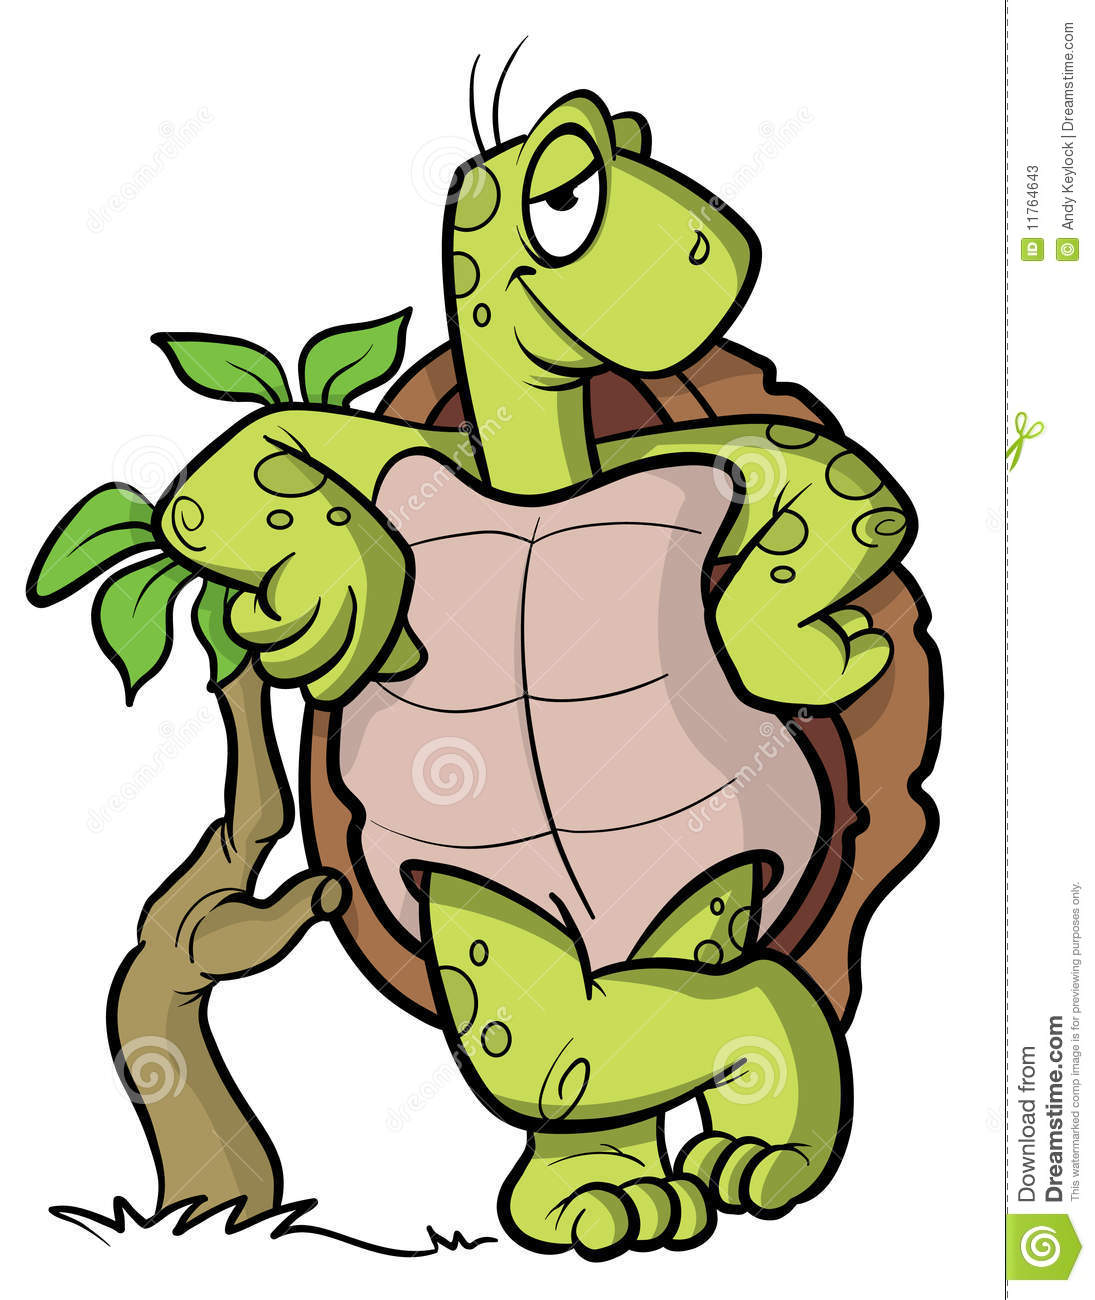 Turtle Or Tortoise Cartoon Illustration Stock Photos - Image: 11764643